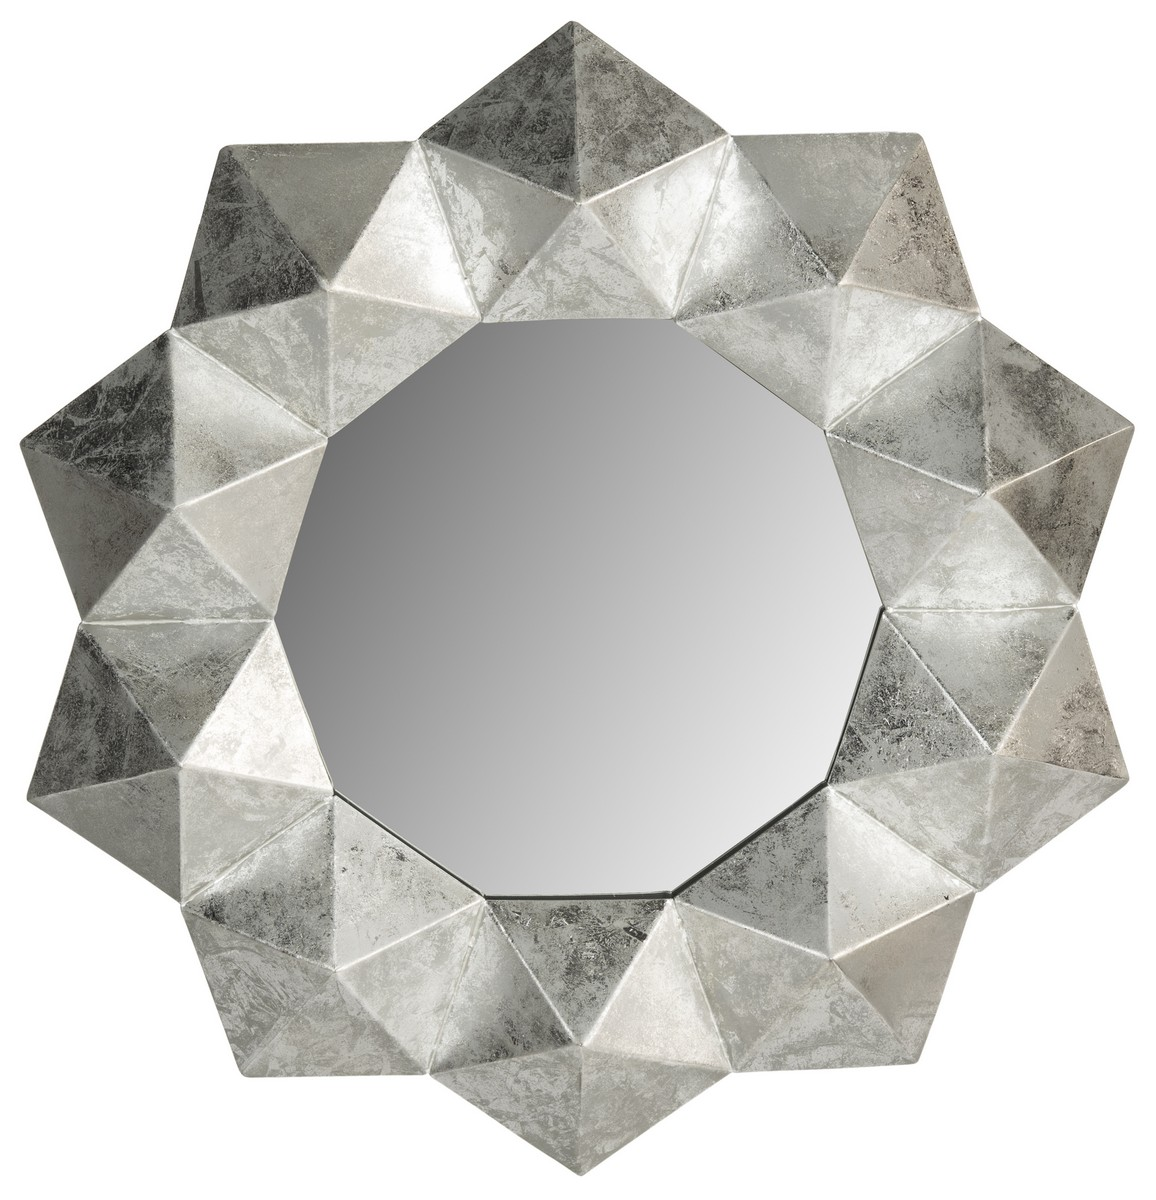 30 Inch Round Mirror Part - 33: ... Silver-leaf Mirror Is A Tribute To The Native Cultures Of South America  And Mexico. Artfully Crafted Of Iron, The 30-inch Round Mirror Is Hand  Finished ...